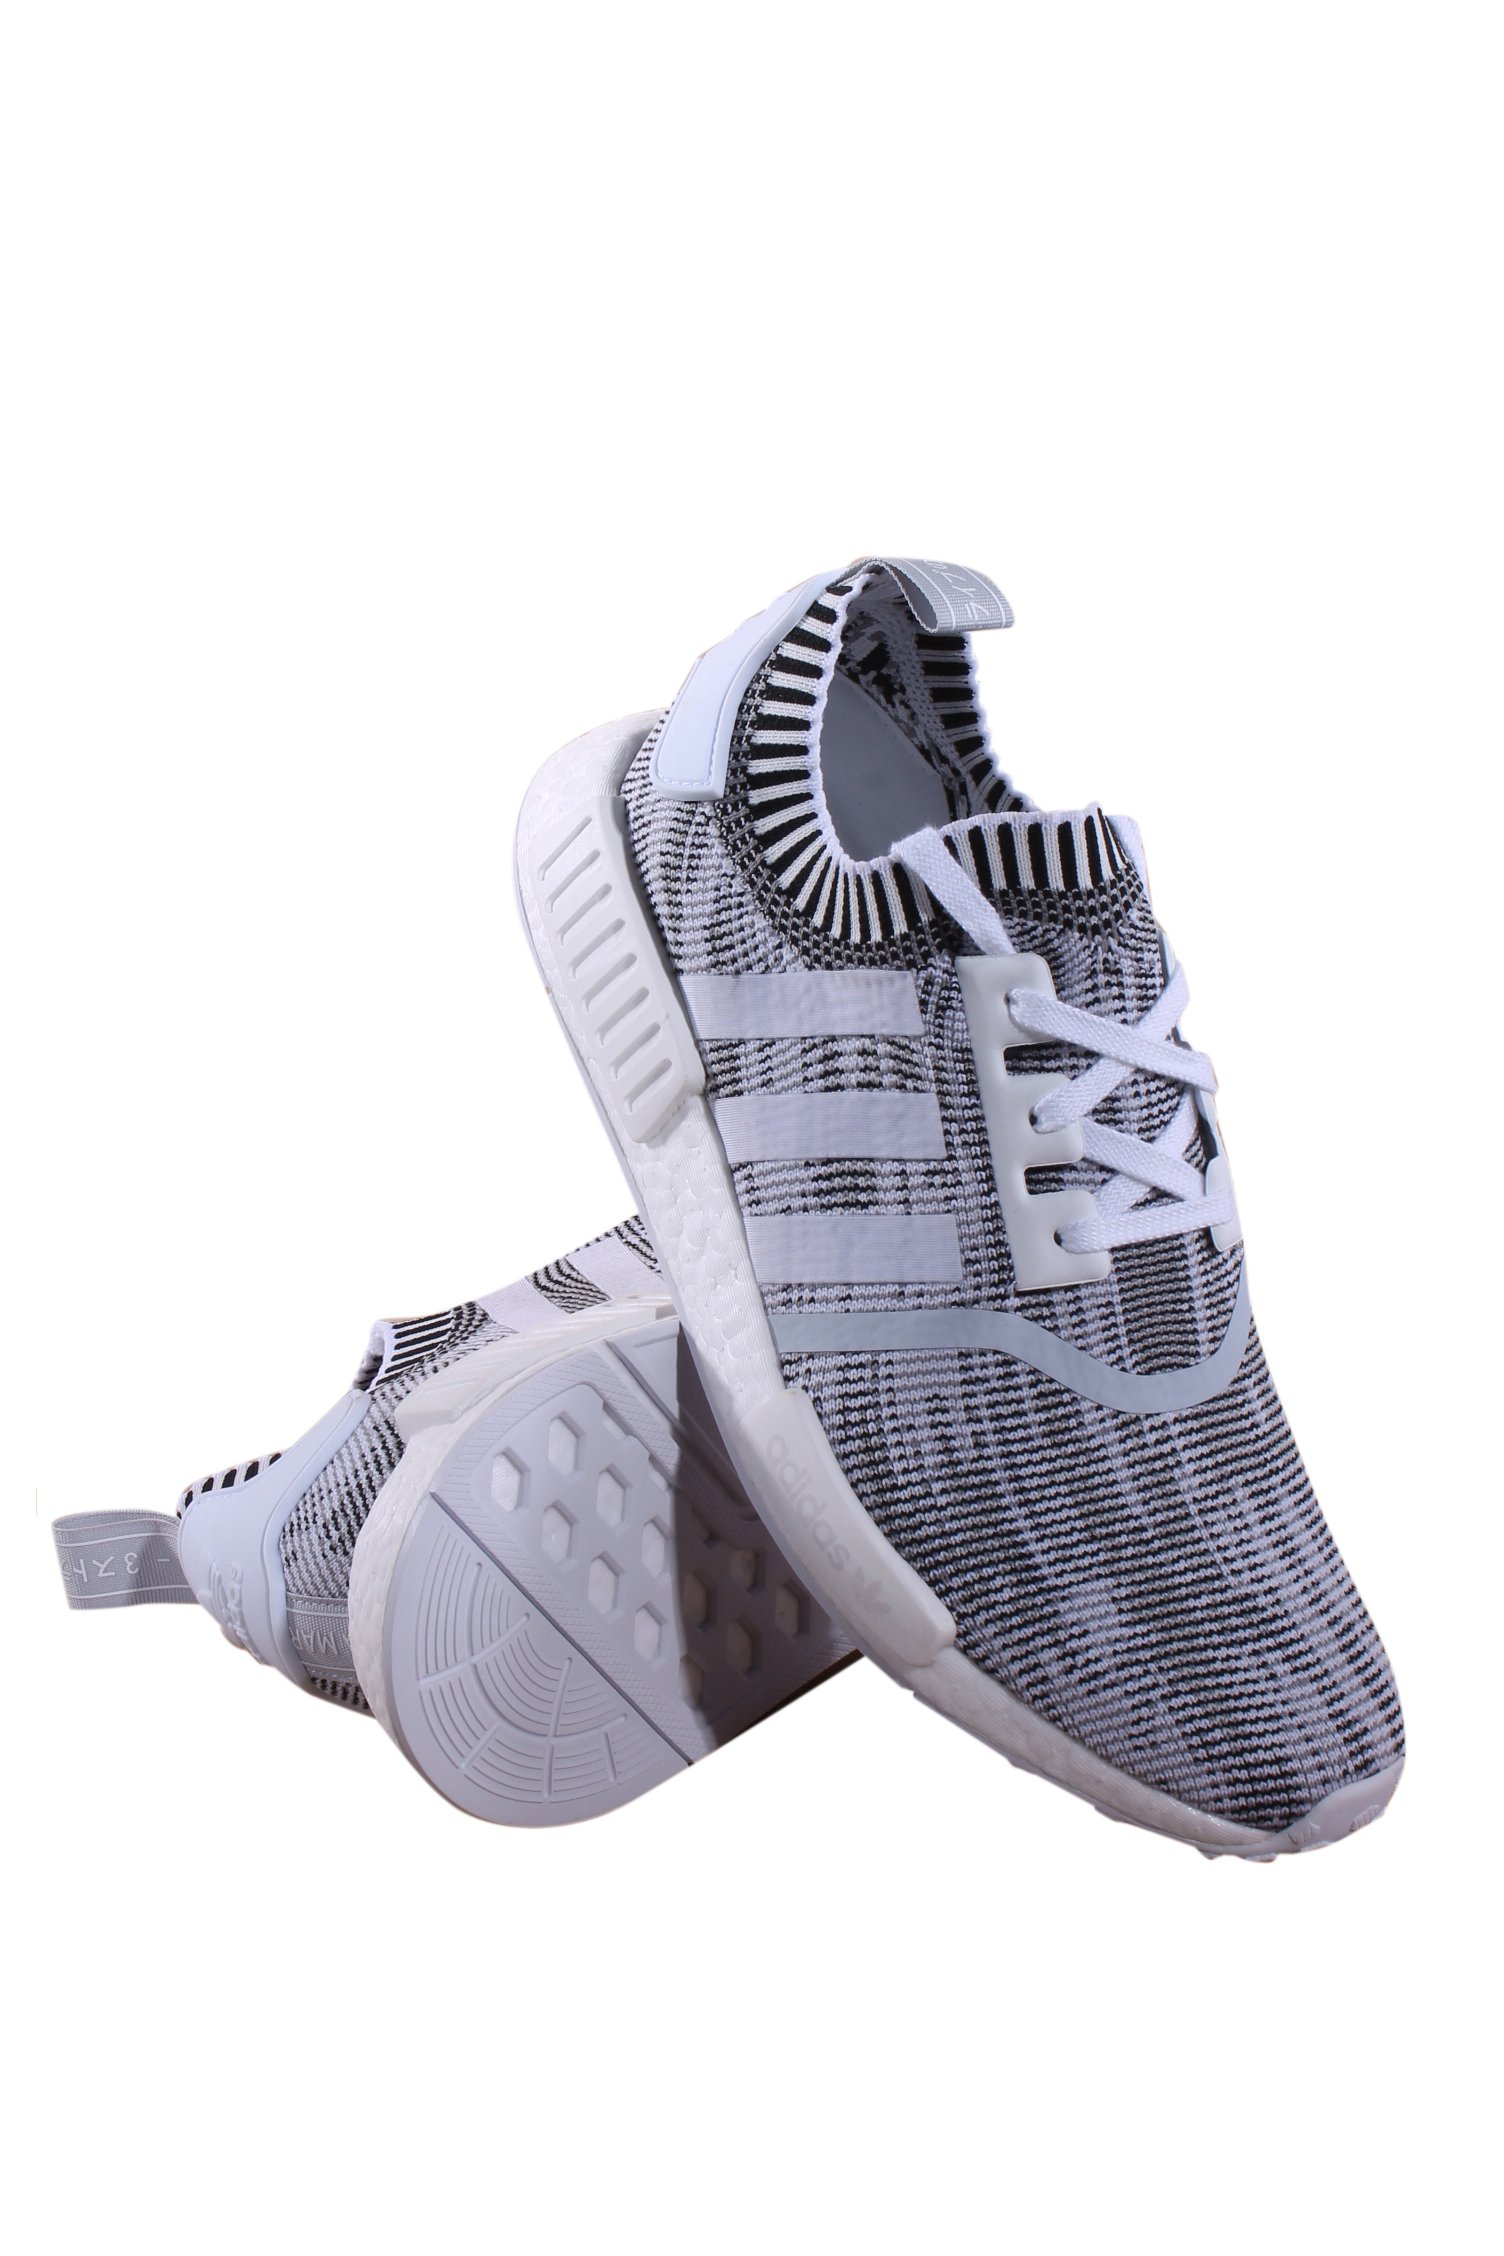 Adidas NMD R1 PK size 12. Core Black Gum White. BY1887